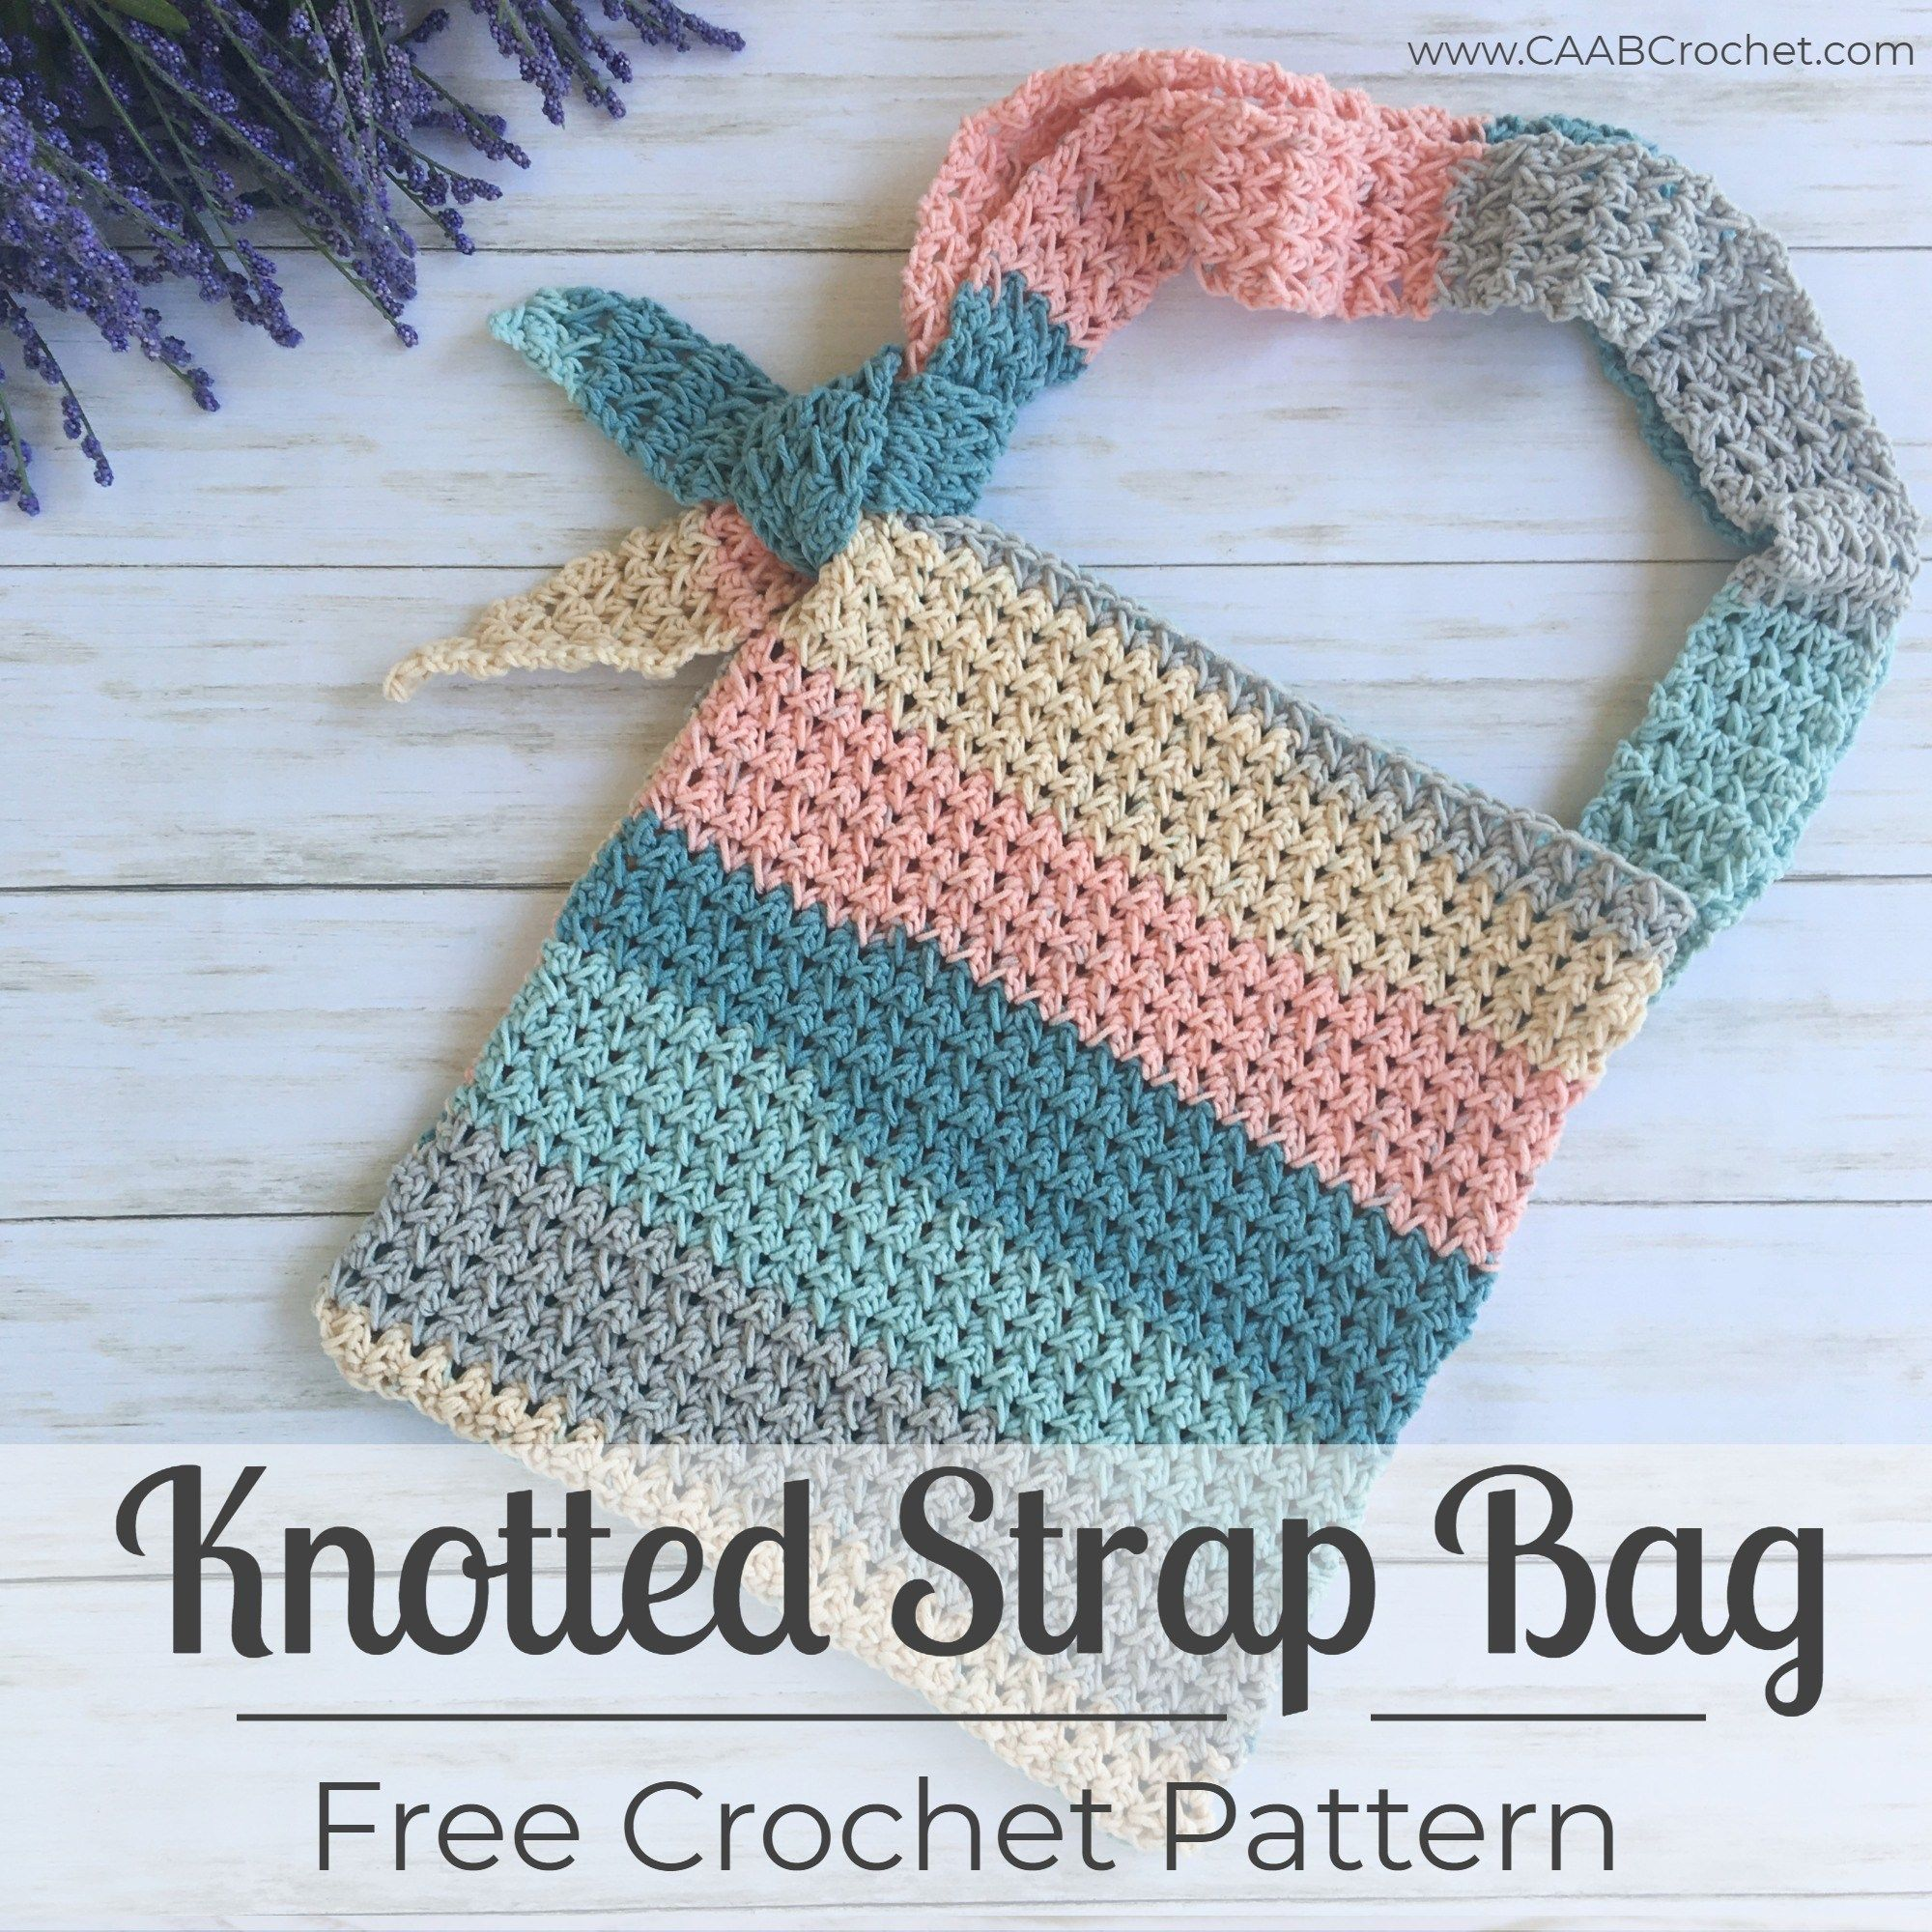 Cotton Cakes Knotted Strap Bag Cute As A Button Crochet Craft Crochet Bag Pattern Crochet Patterns Leg Warmers Crochet Pattern